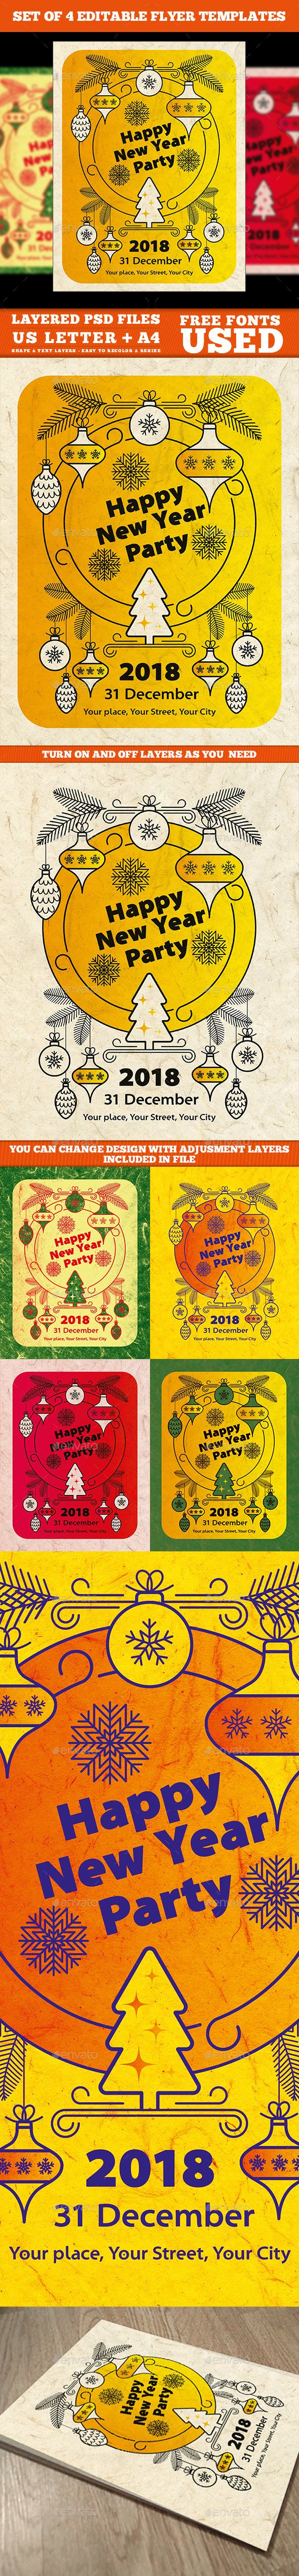 #New Year Flyer Template - #Events Flyers